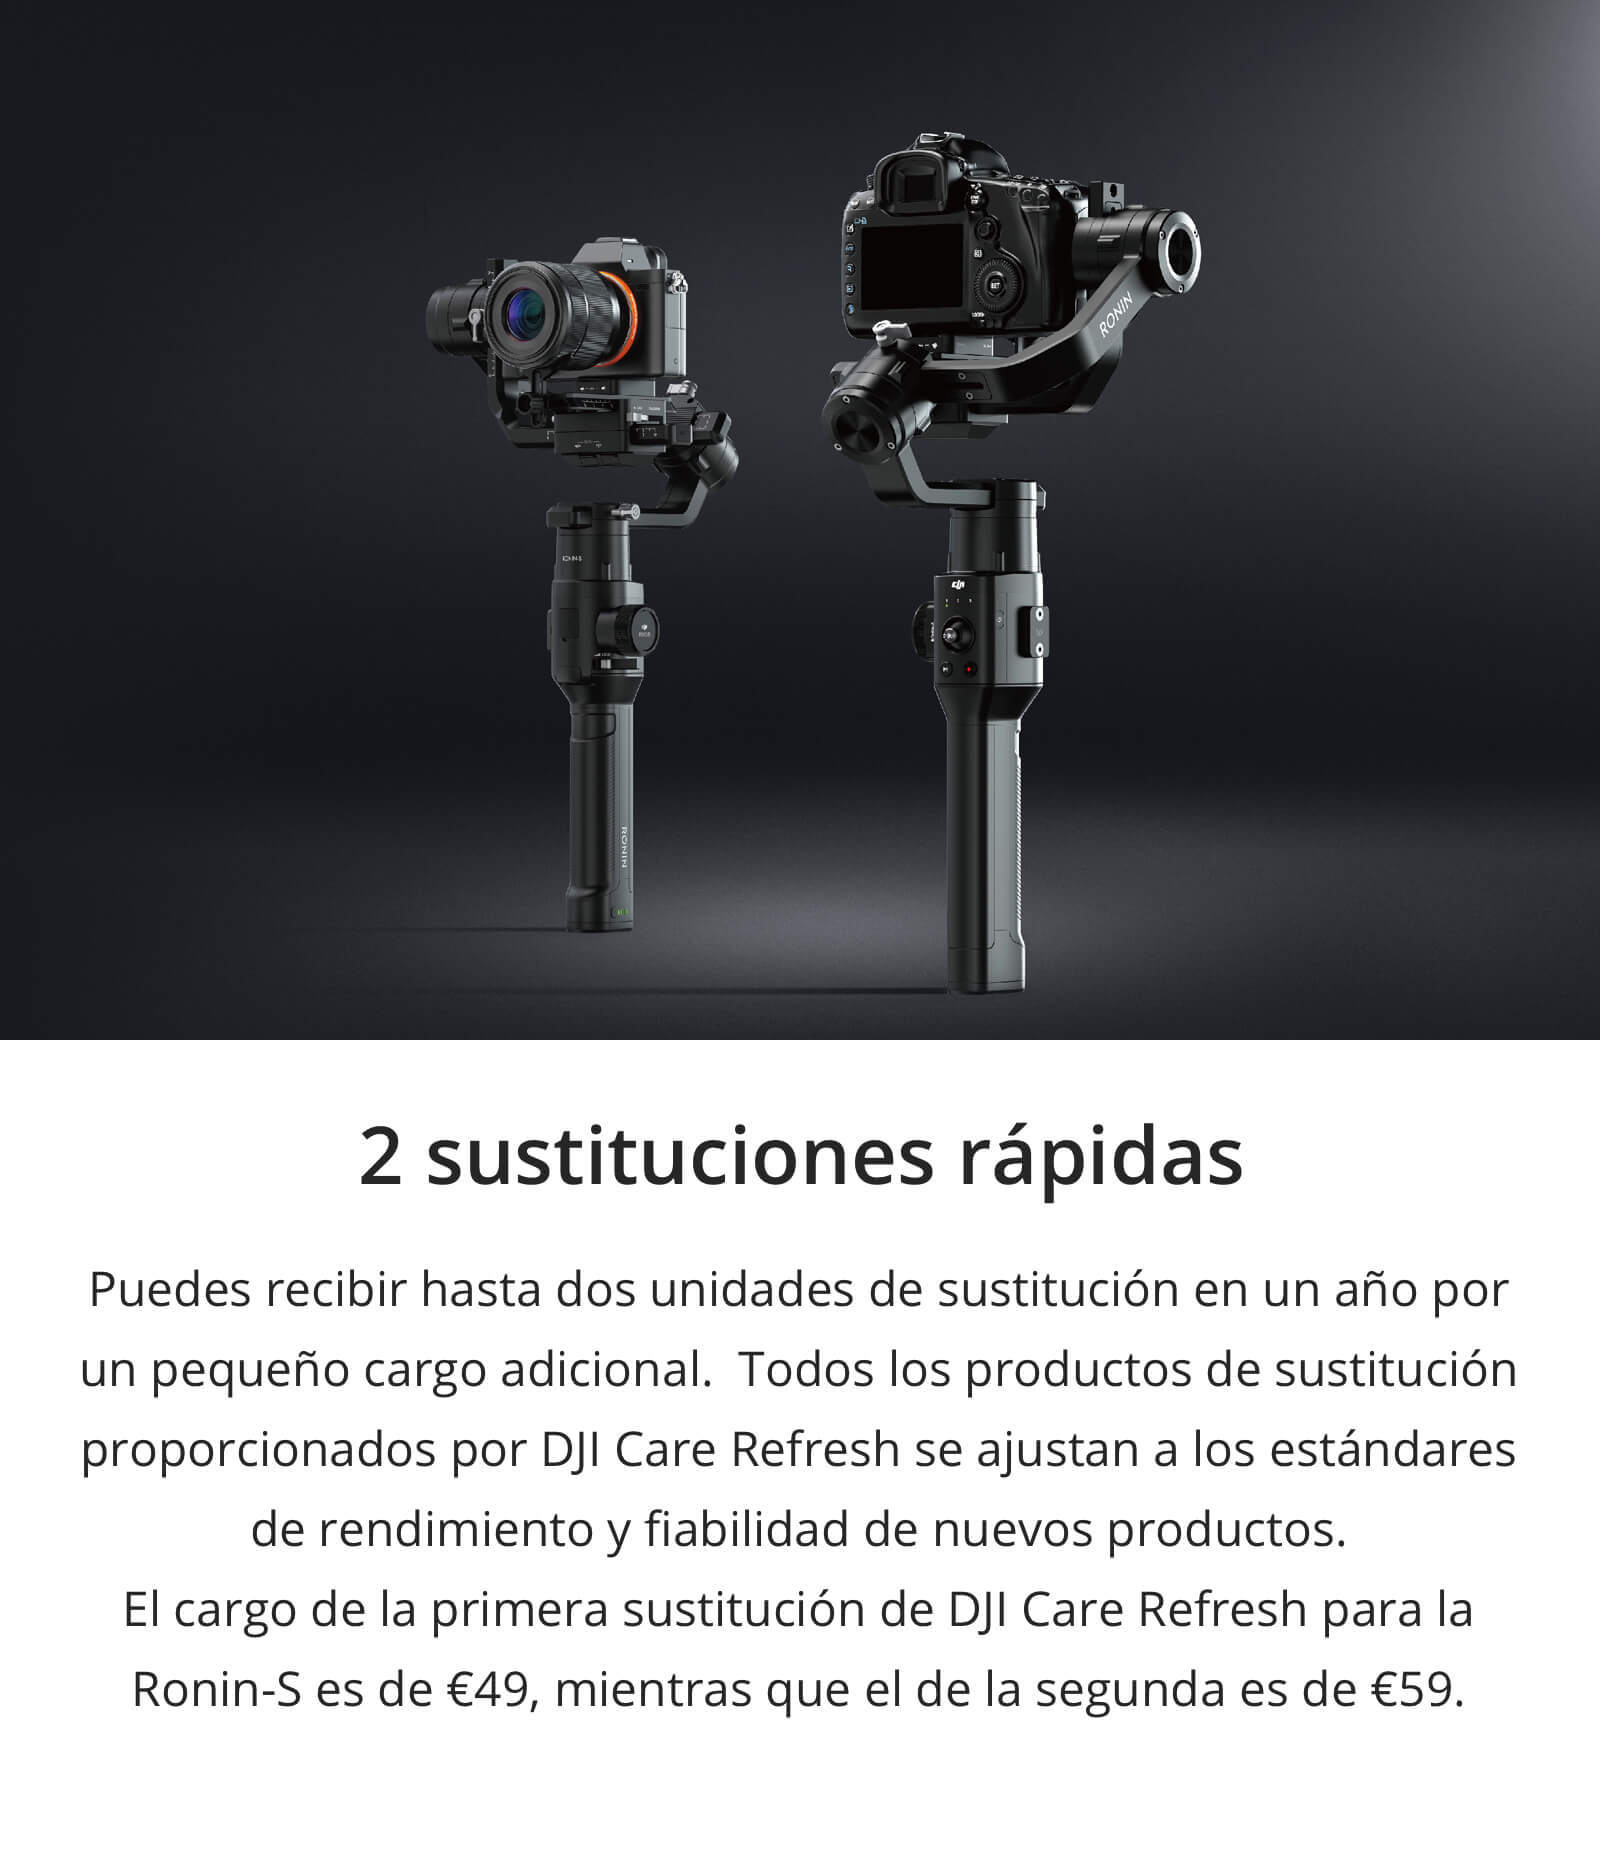 DJI_Care_Refresh_Ronin-S_stockrc1